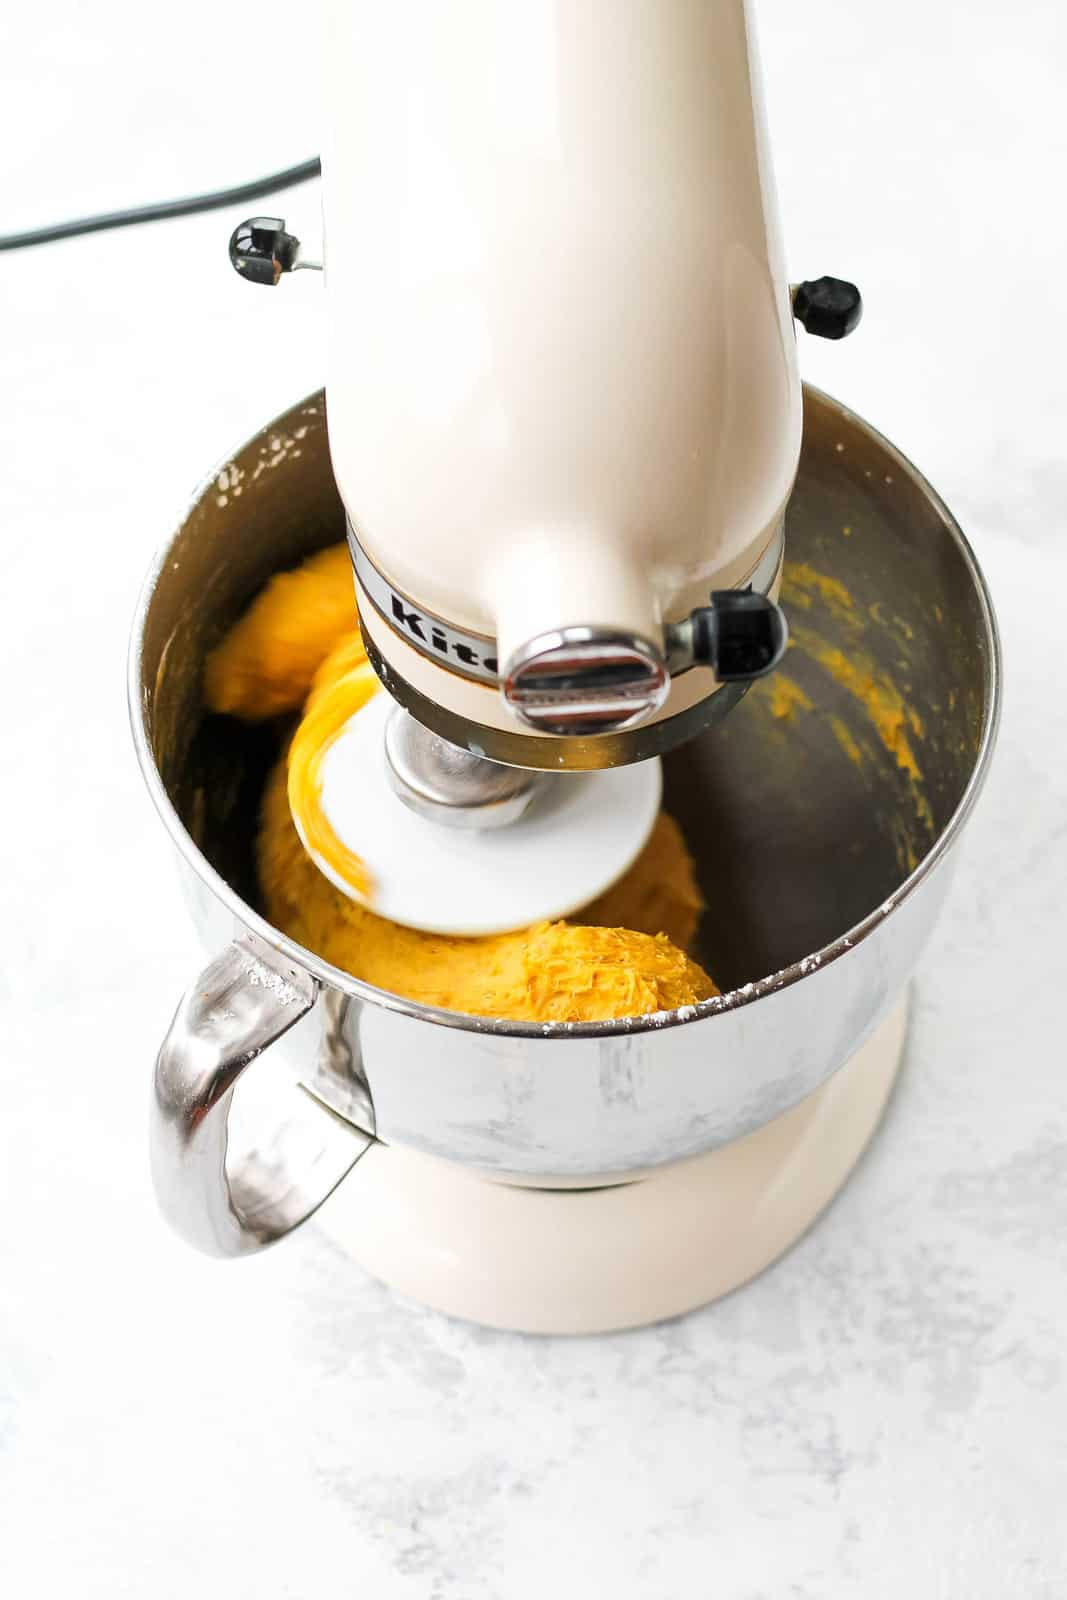 saffron dough being mixed in a white kitchen aid mixer